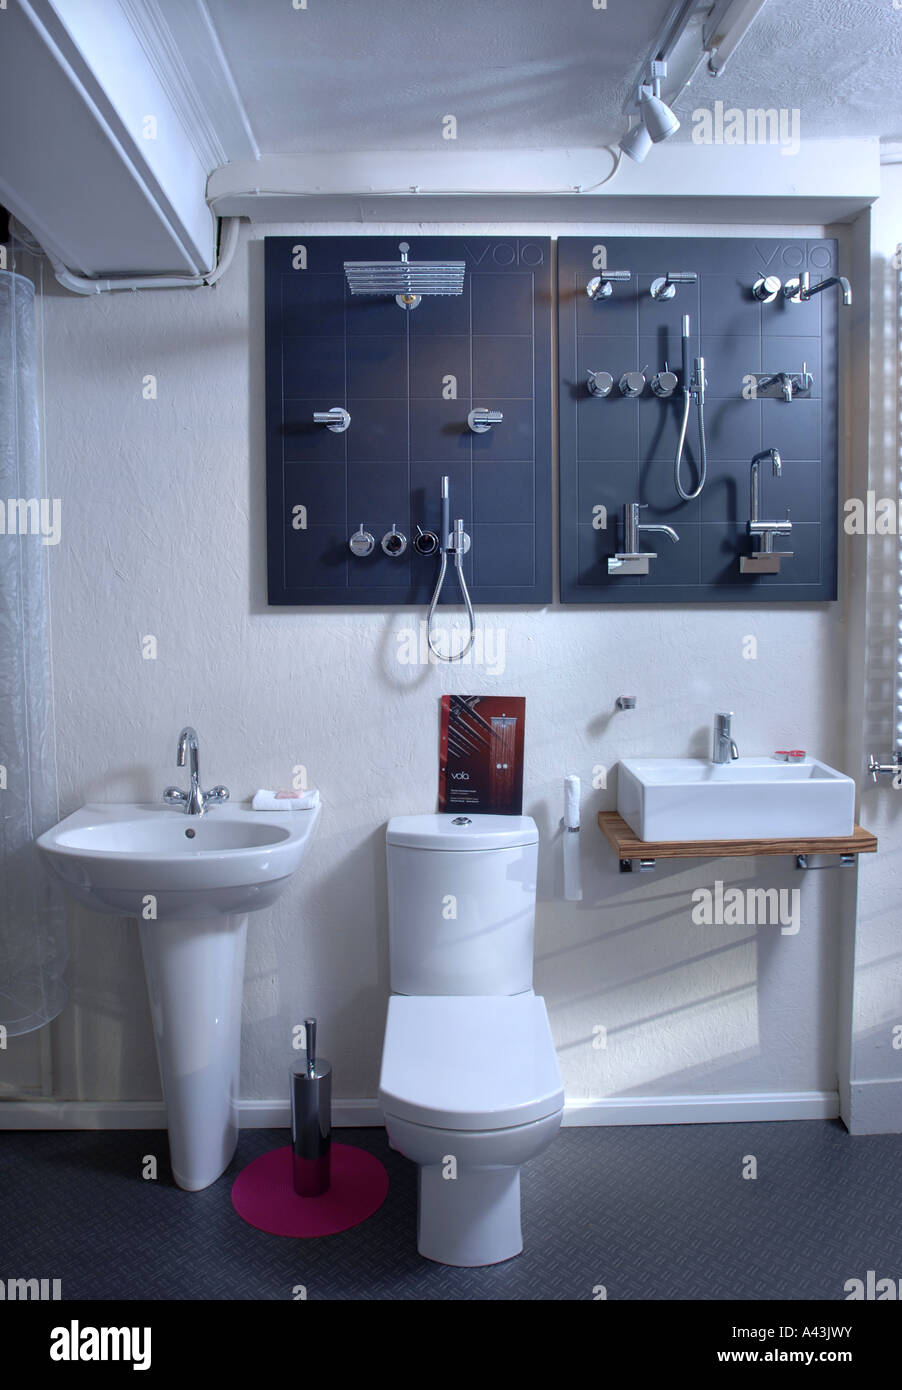 LUXURY VOLA BATHROOM FITTINGS IN THE WINDOW OF A SMALL INDEPENDENTLY OWNED BATHROOM SHOWROOM UK - Stock Image